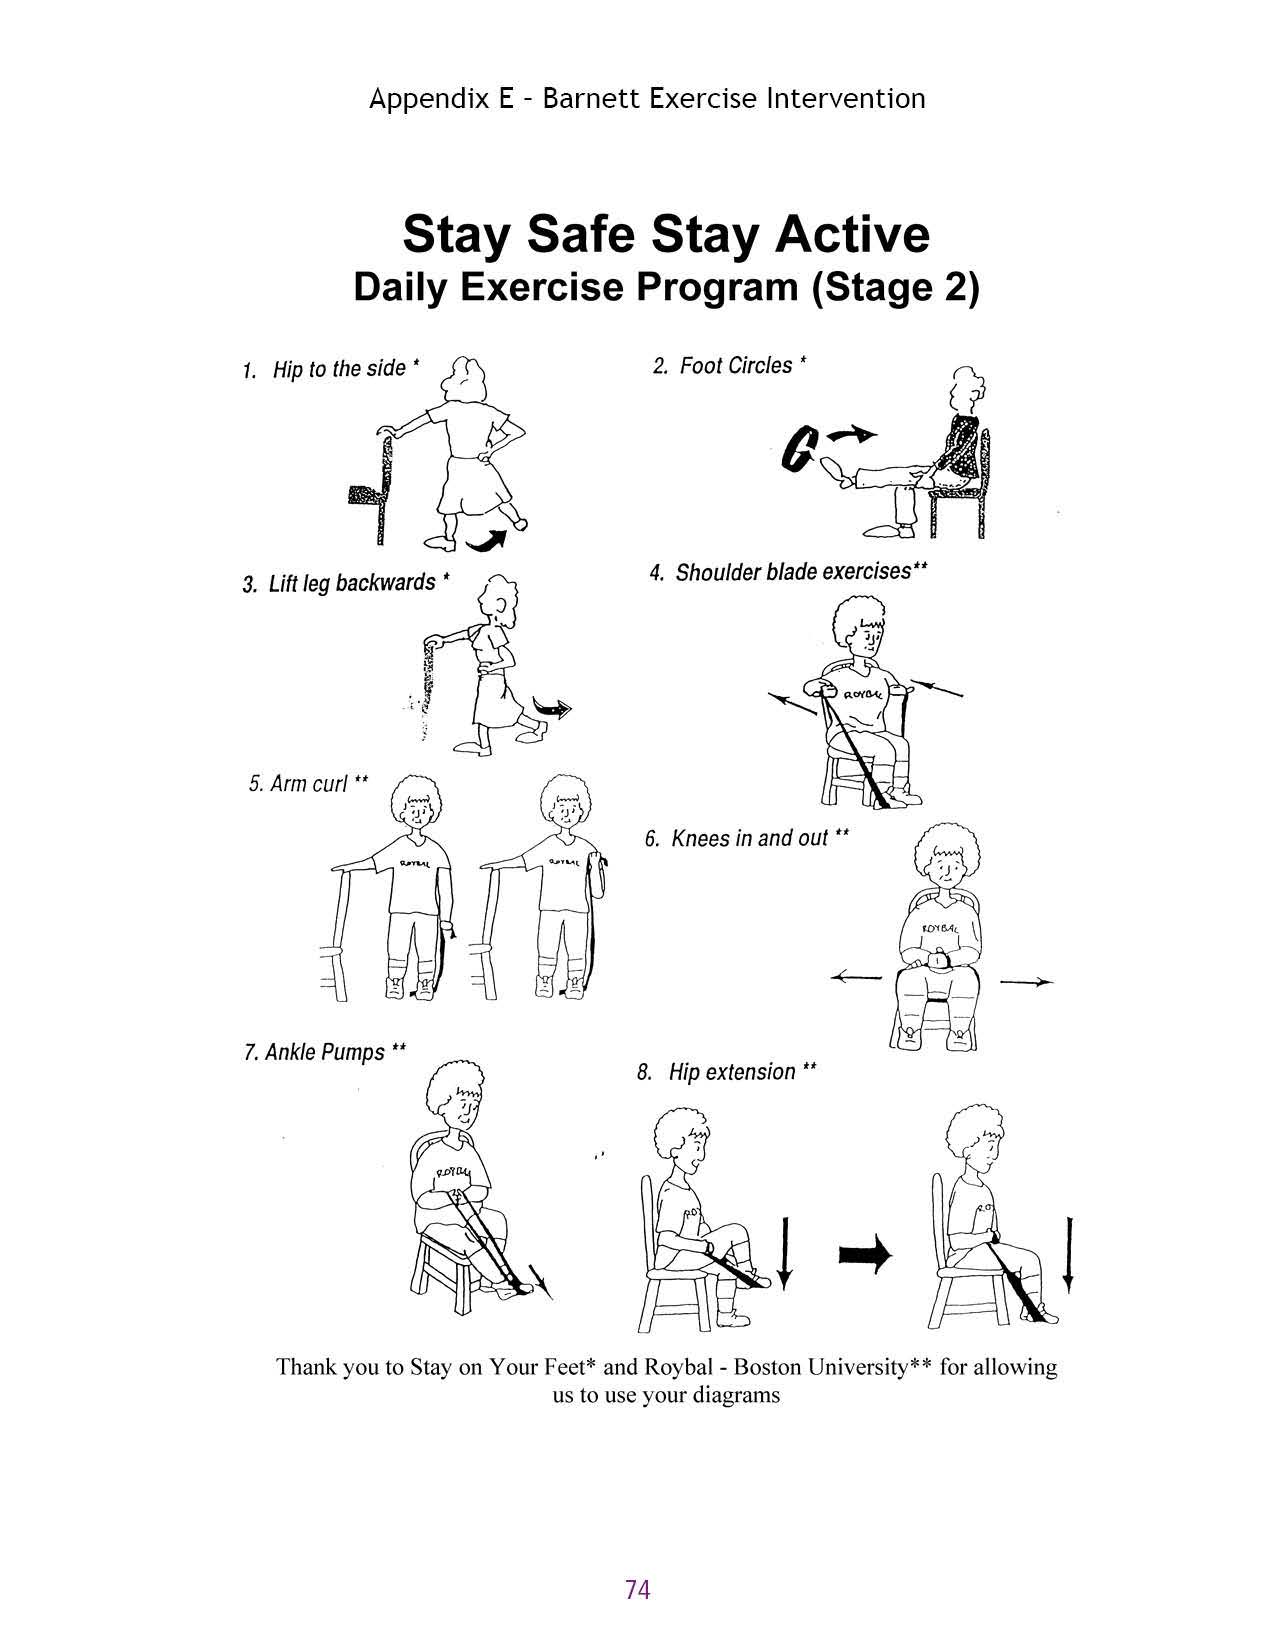 Appendix E - Barnett Exercise Intervention Stay Safe Stay Active Daily Exercise Program (Stage 2) 1. Hip to the side' 2. Foot Circles' 3. Lift leg backwards' 4.